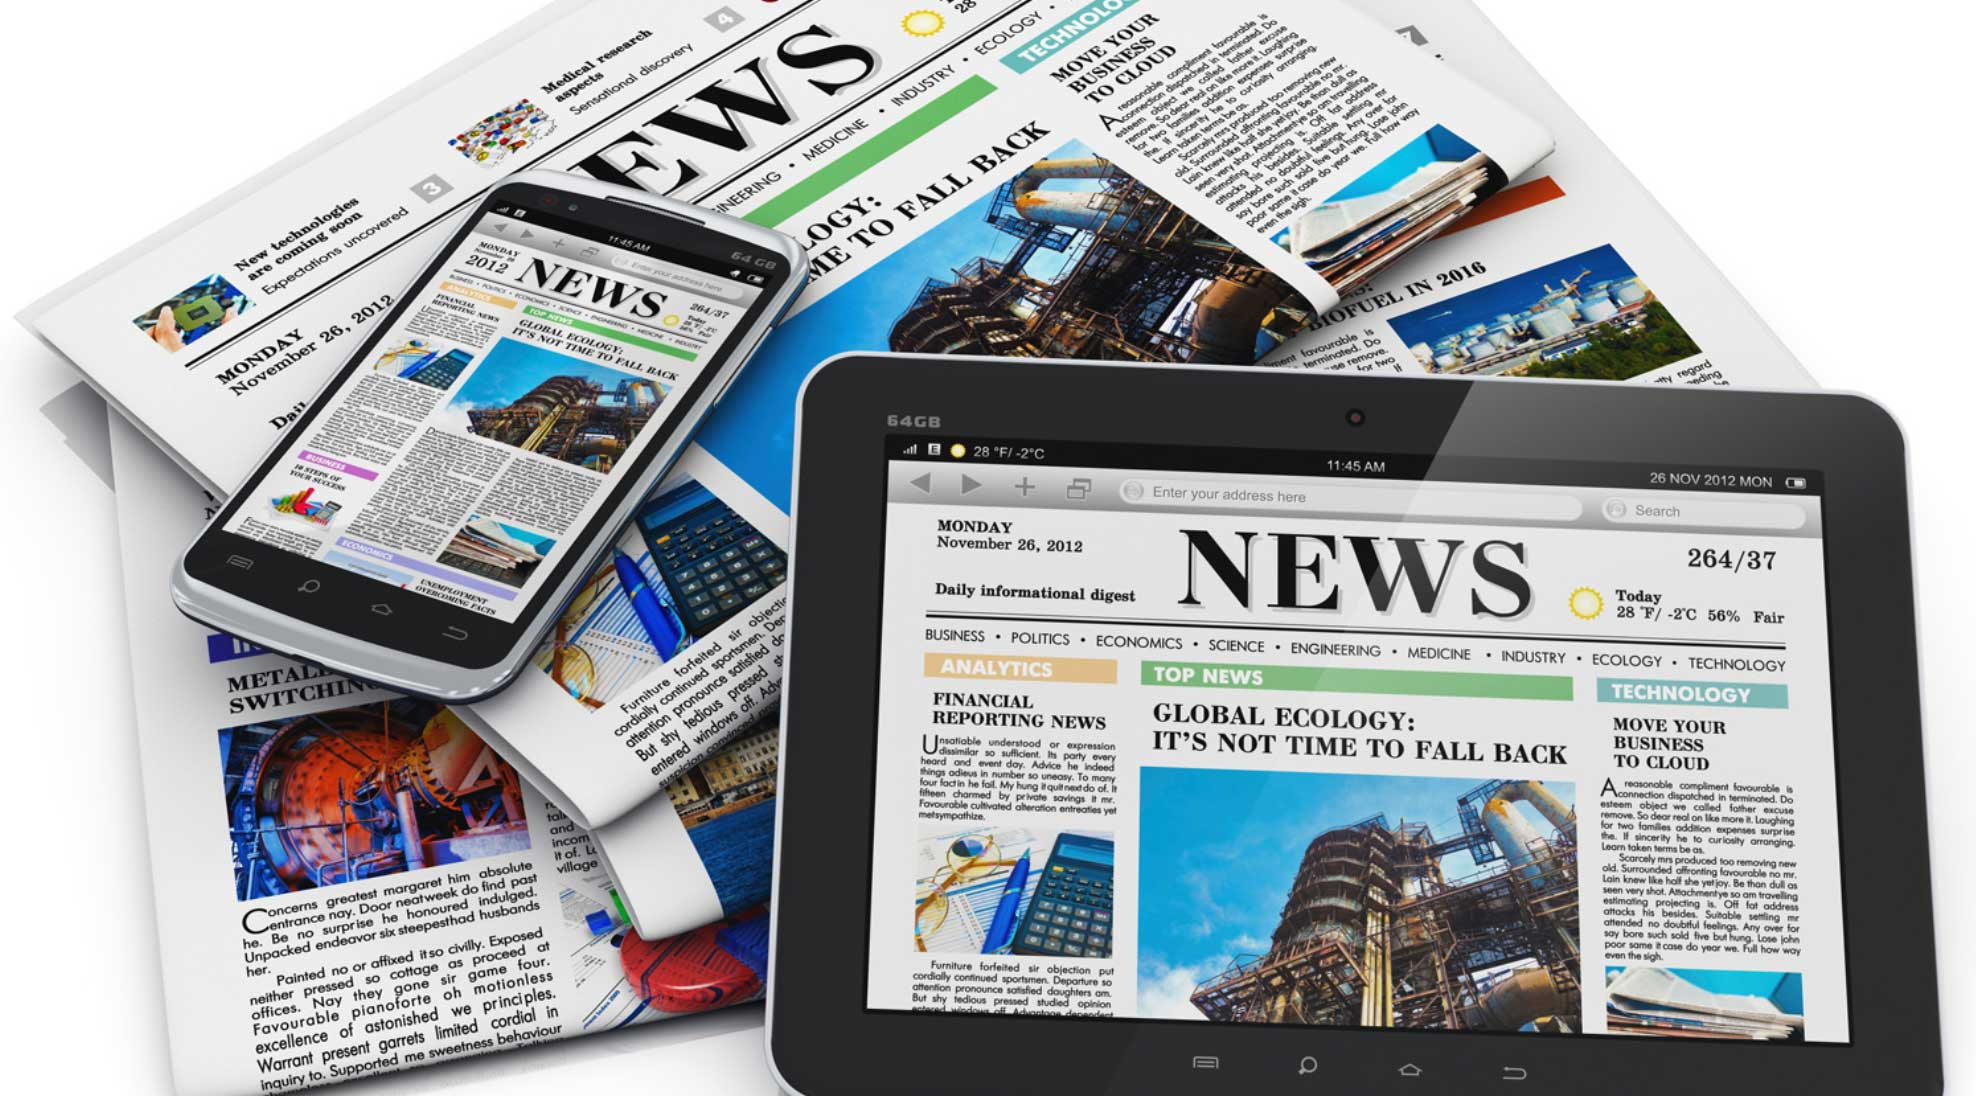 How grammar and spelling error rates affect digital news credibility - NewsLab